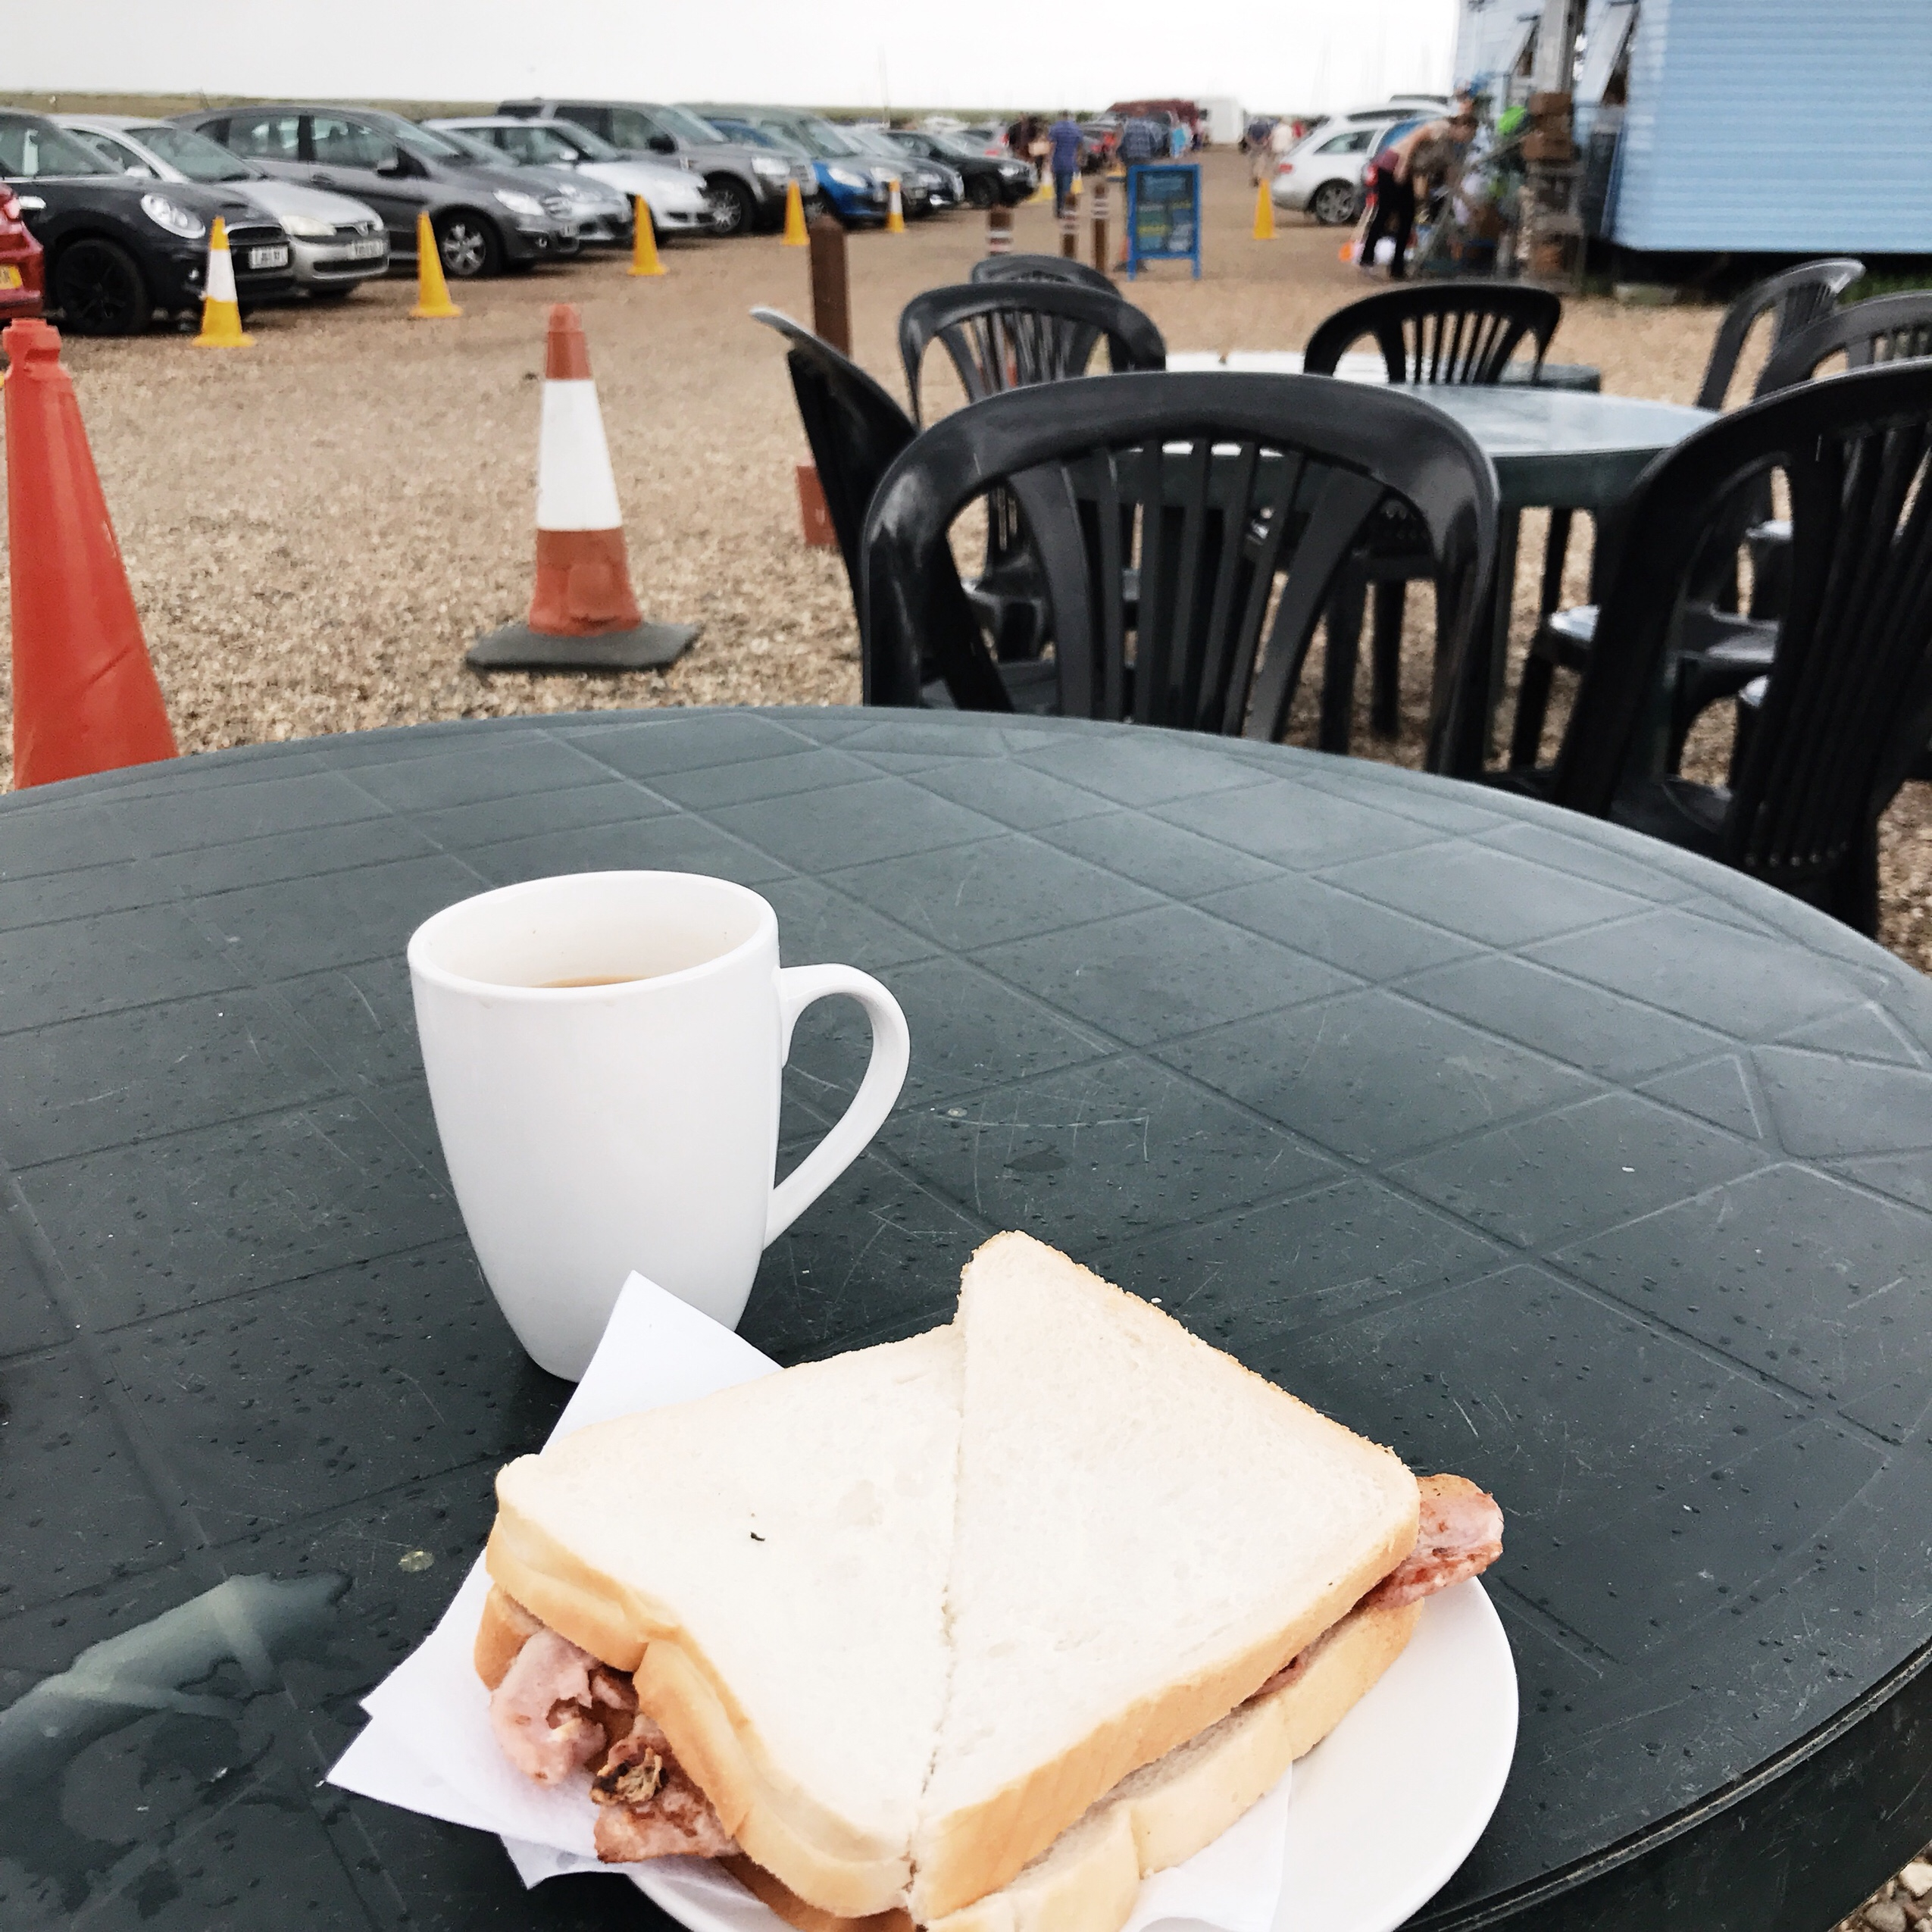 image of bacon sandwich at Blakeney Quay in Norfolk